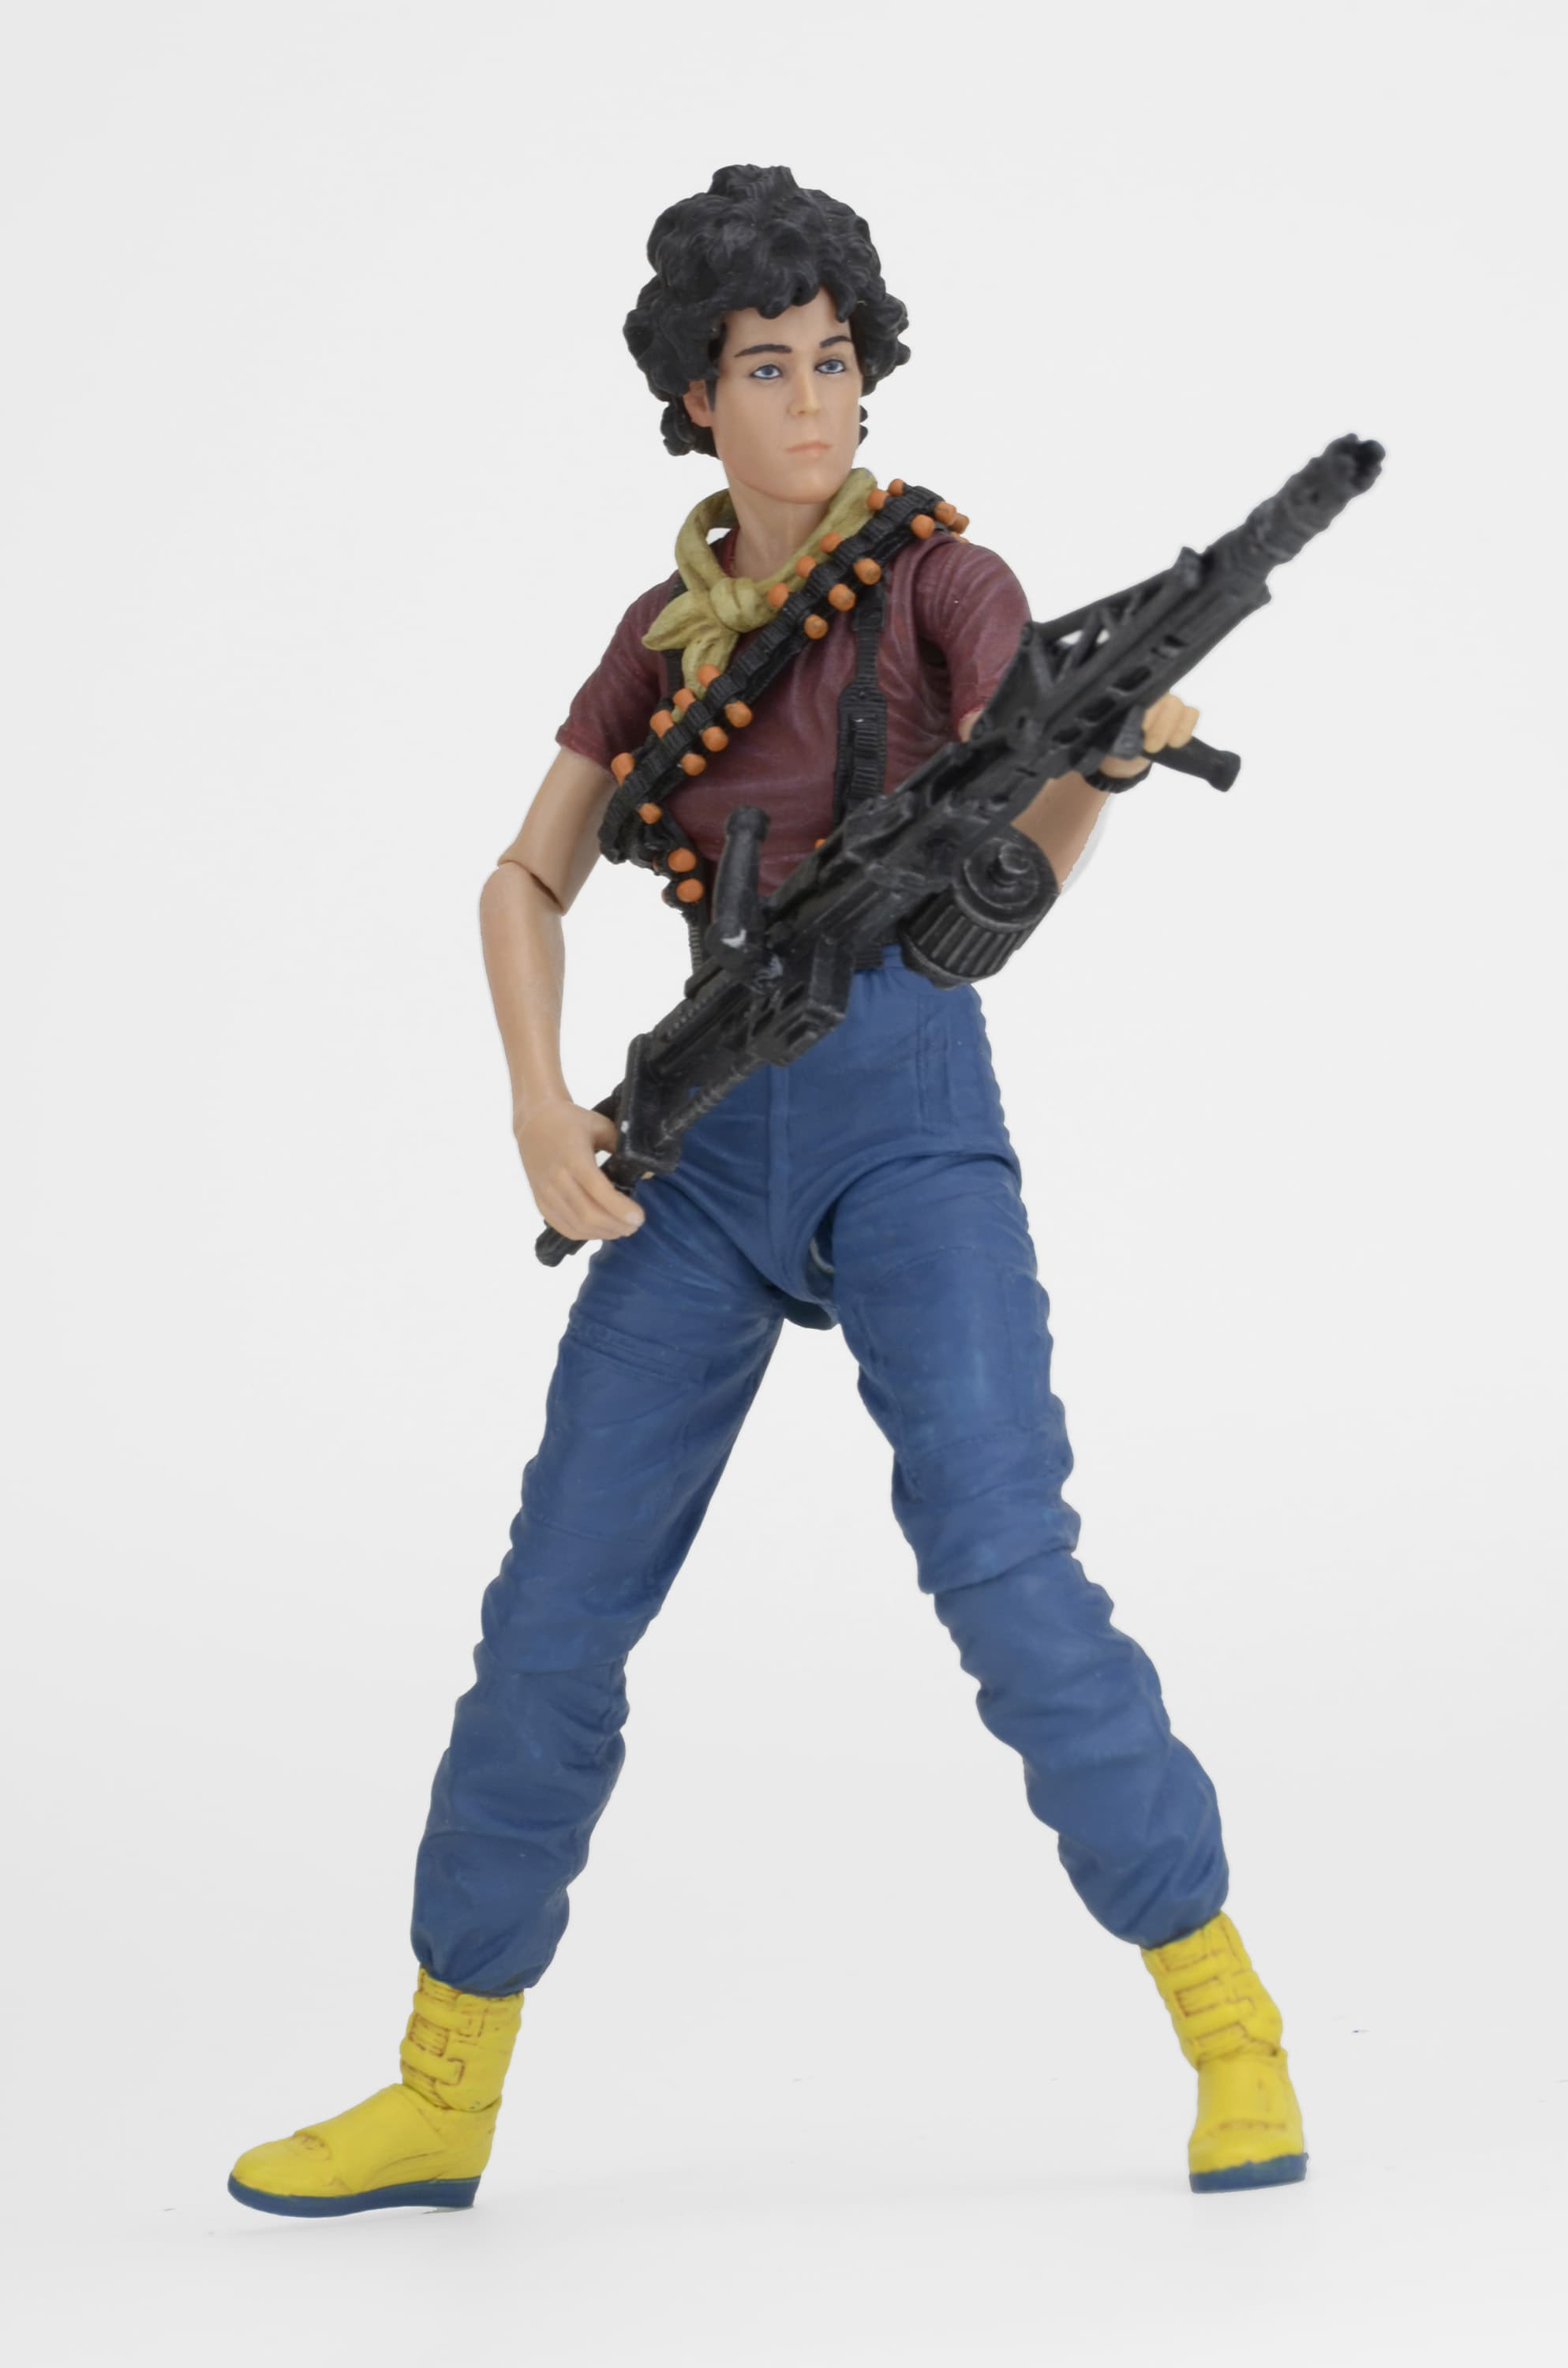 RIPLEY 2016 KENNER TRIBUTE + COMIC FIGURA 18 CM ALIENS ALIEN DAY EXCLUSIVE 2016